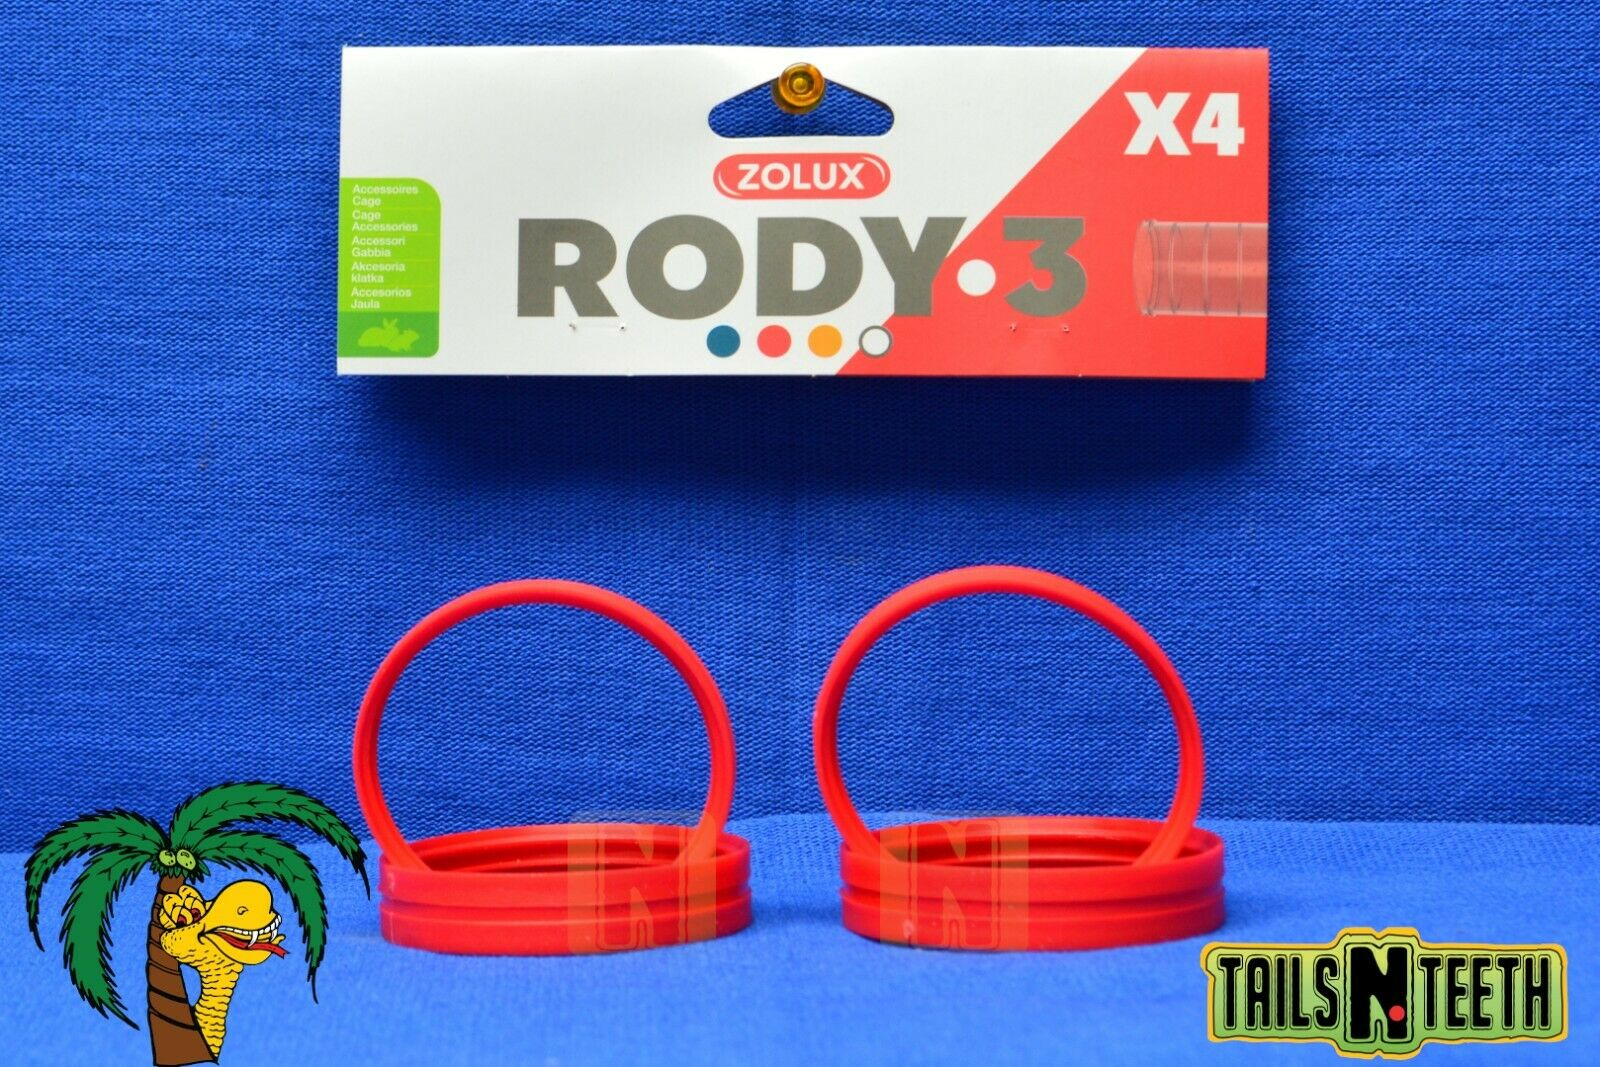 Zolux RODY-3 Connection Rings For Rody-3 InterConnecting Cages - 4 Pack - Red - CA$3.99